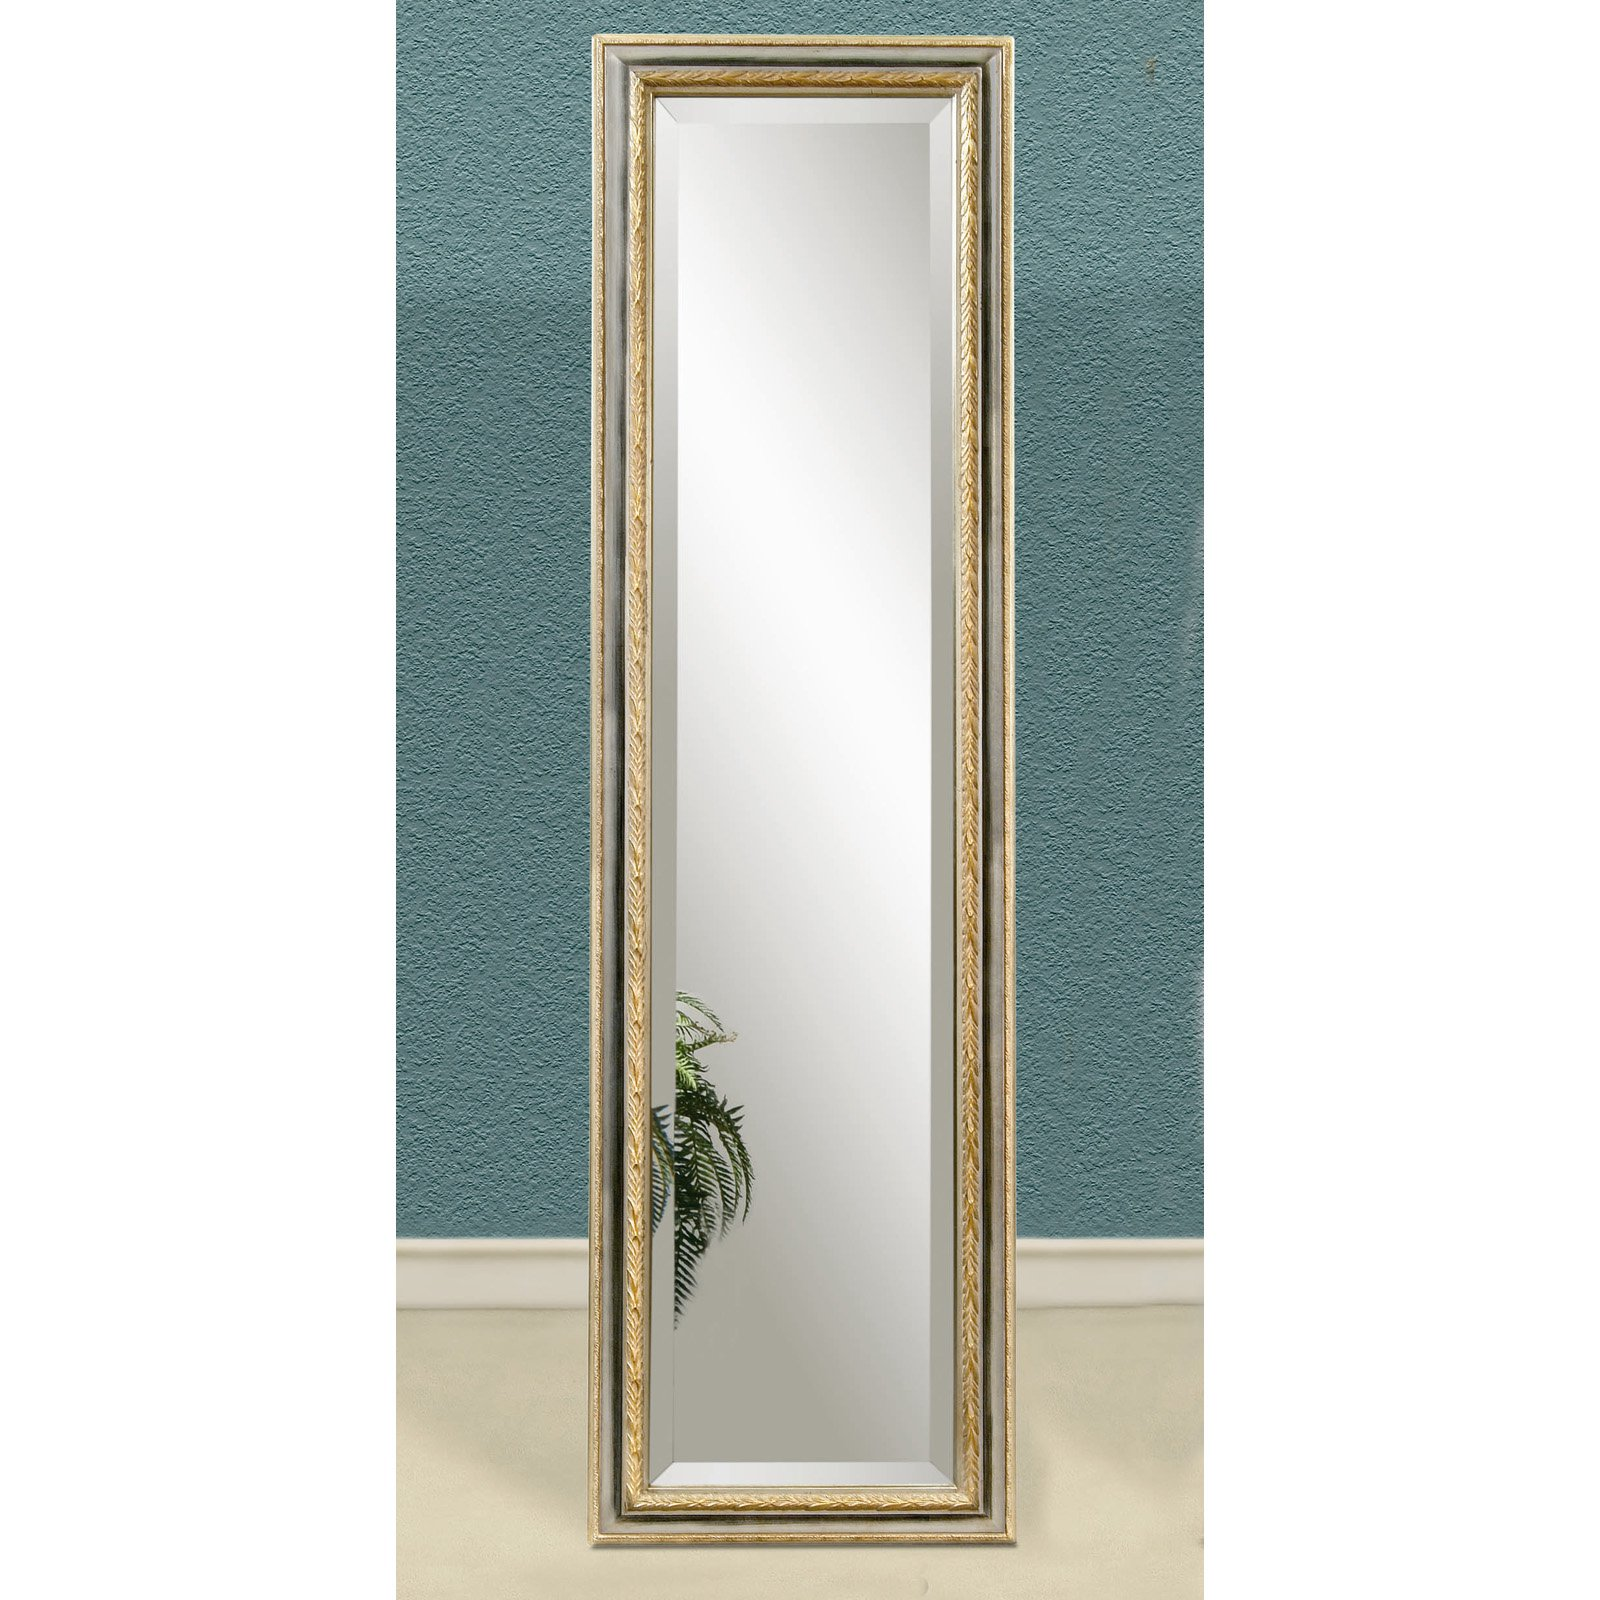 Cool floor length mirrors ornate ornament mirror frame can be place at your beautiful bedroom Ideas